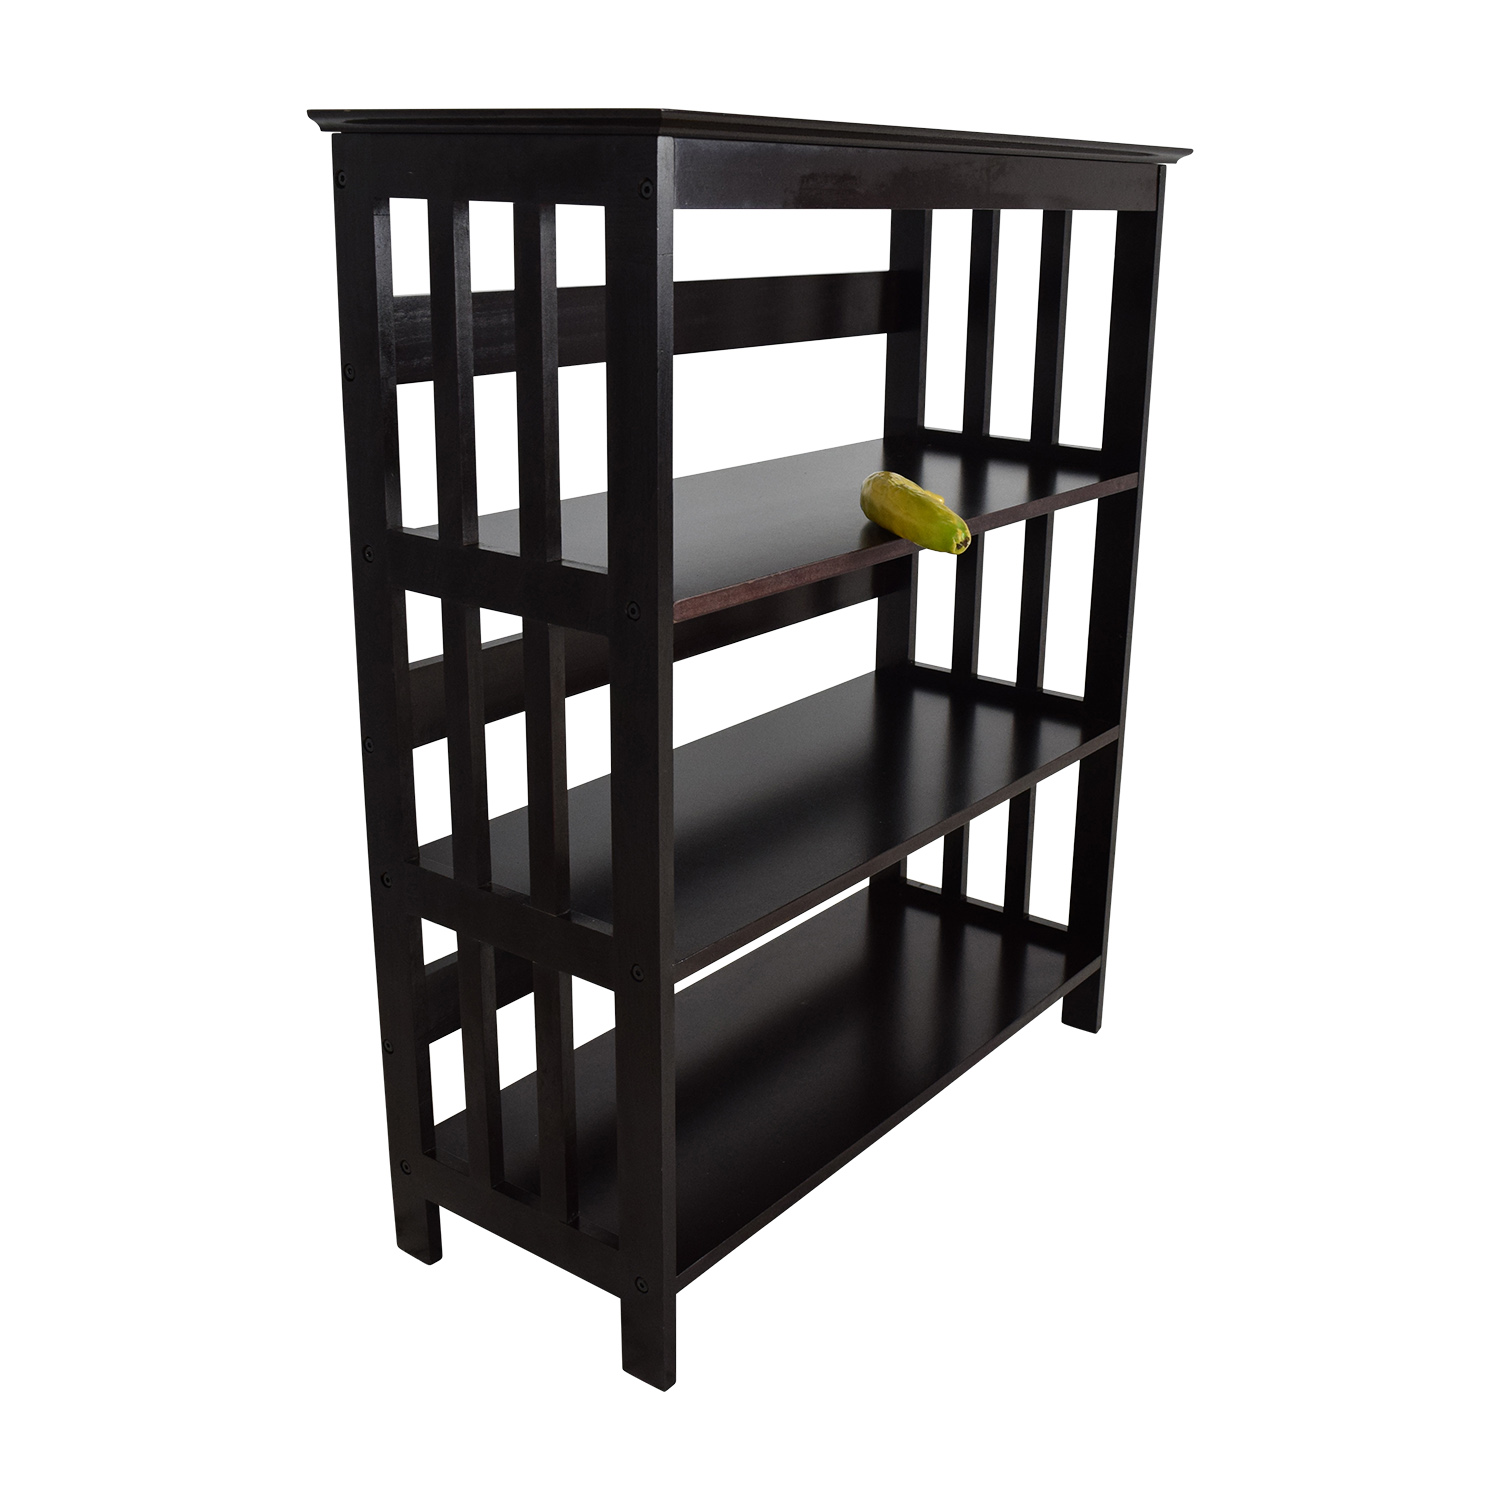 Unknown brand Wood Shoe Rack second hand